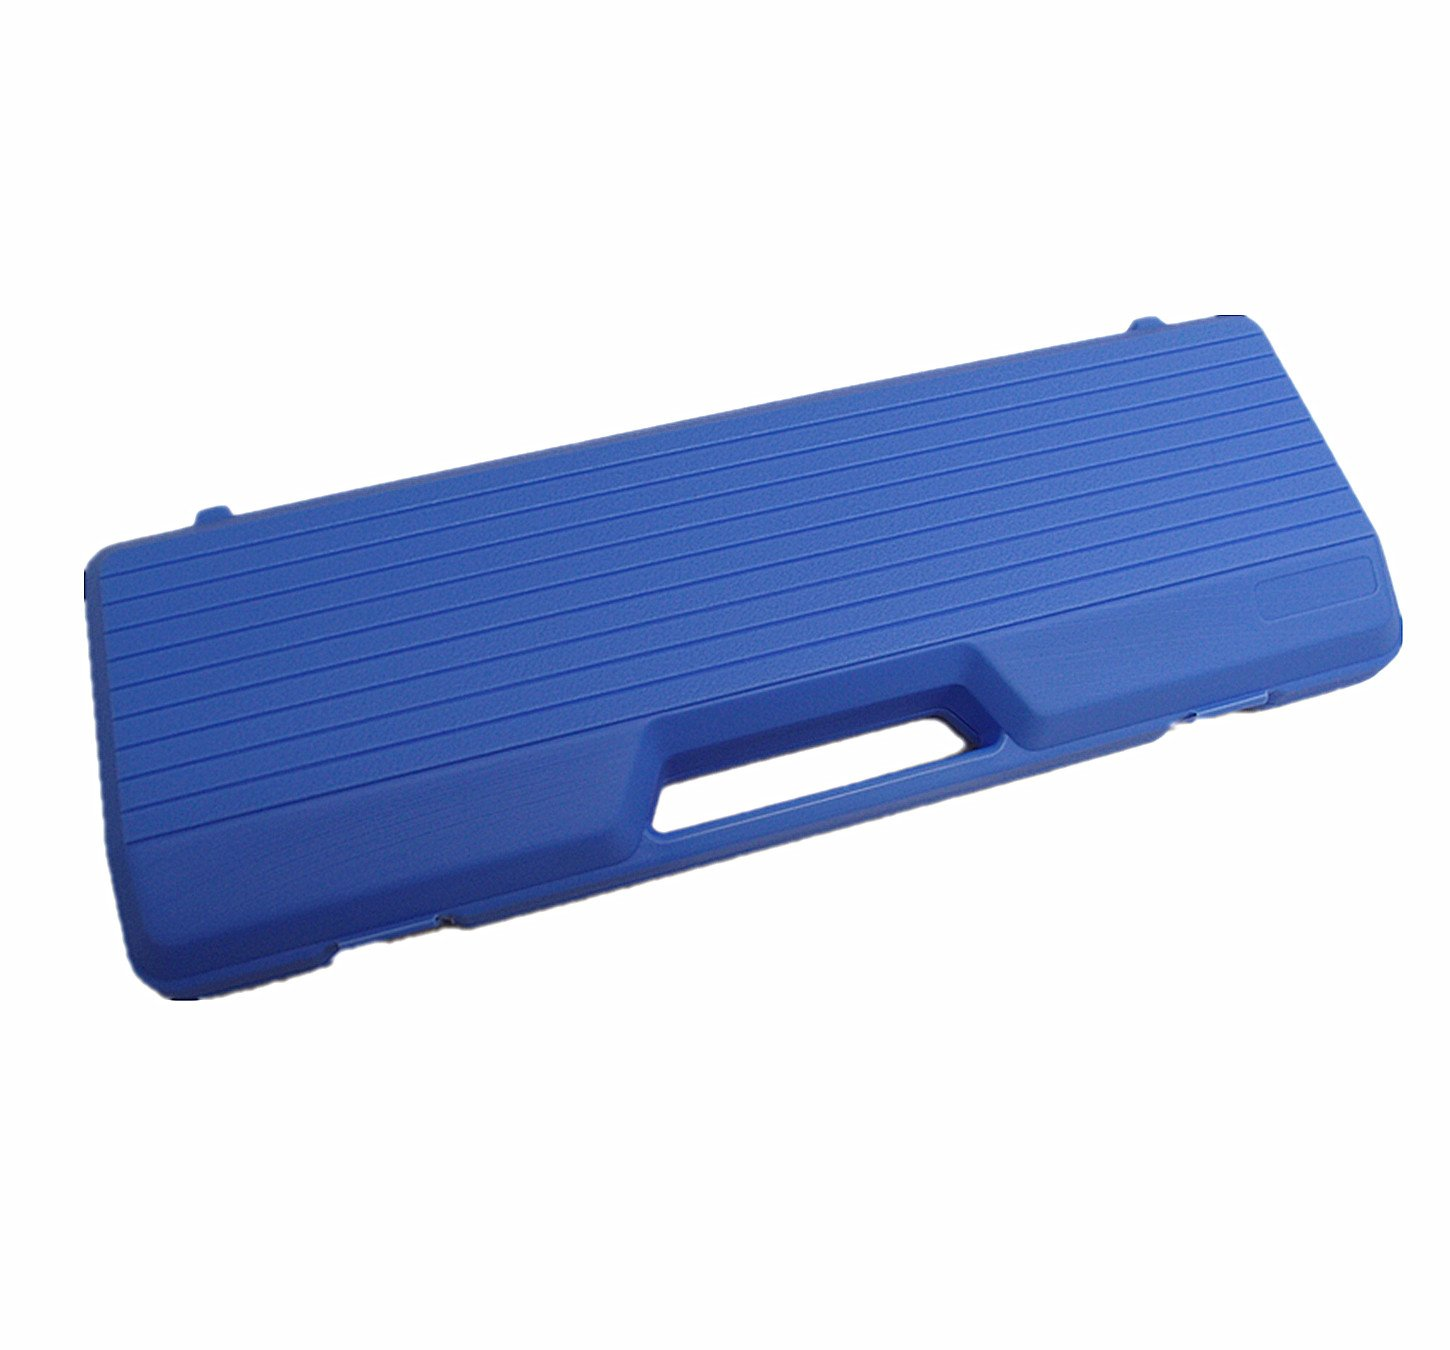 Woodnote Brand - Blue Color 37 Key Melodica and & Hard Shell Case by Woodnote